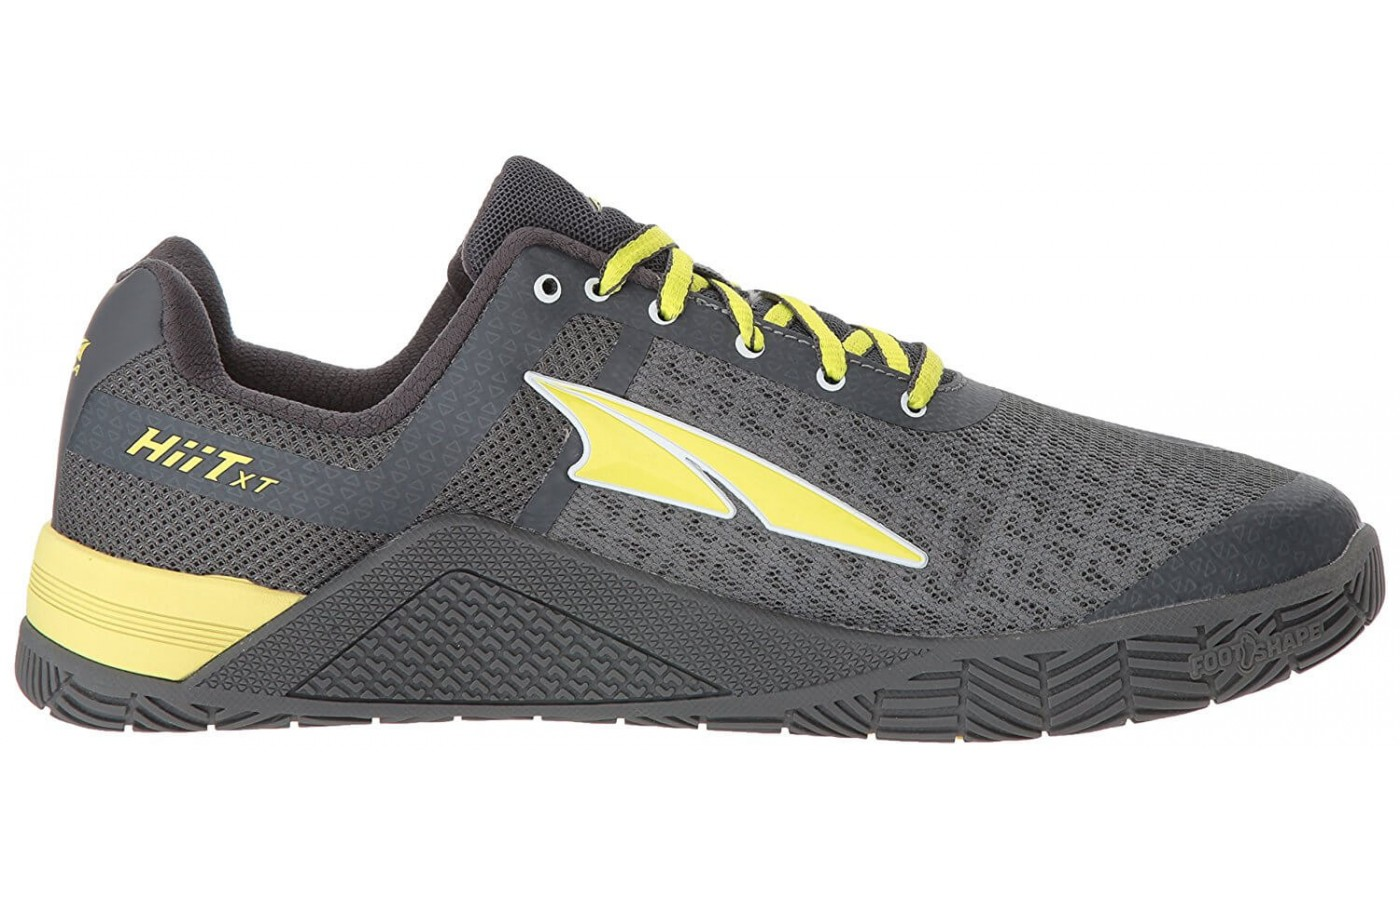 The Altra HIIT XT features a zero-drop design